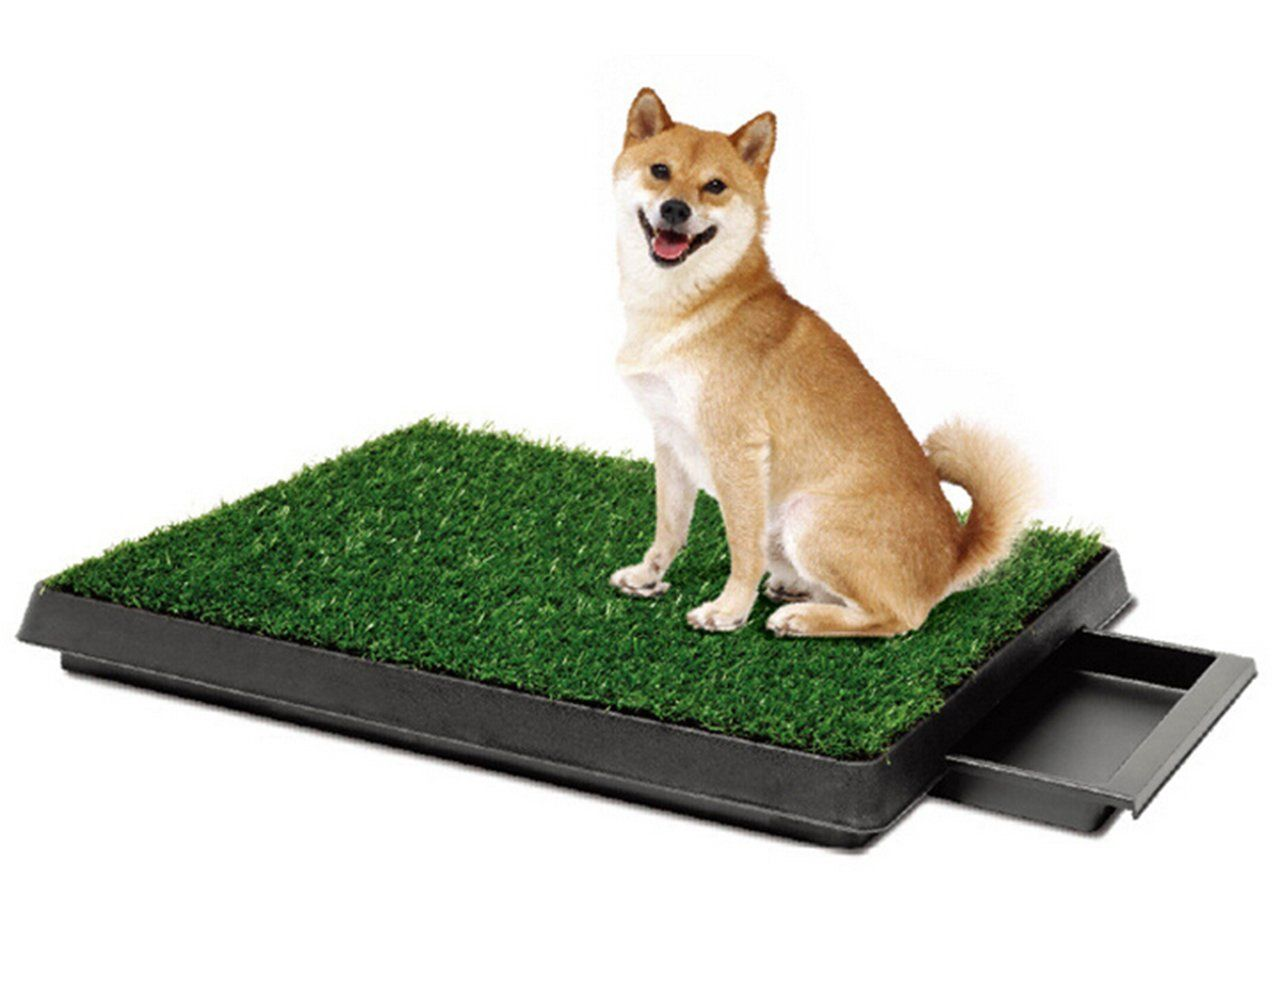 Arelang Pet Indoor Toilet Dog Toilet Lawn Drawer Pet Toilet Small